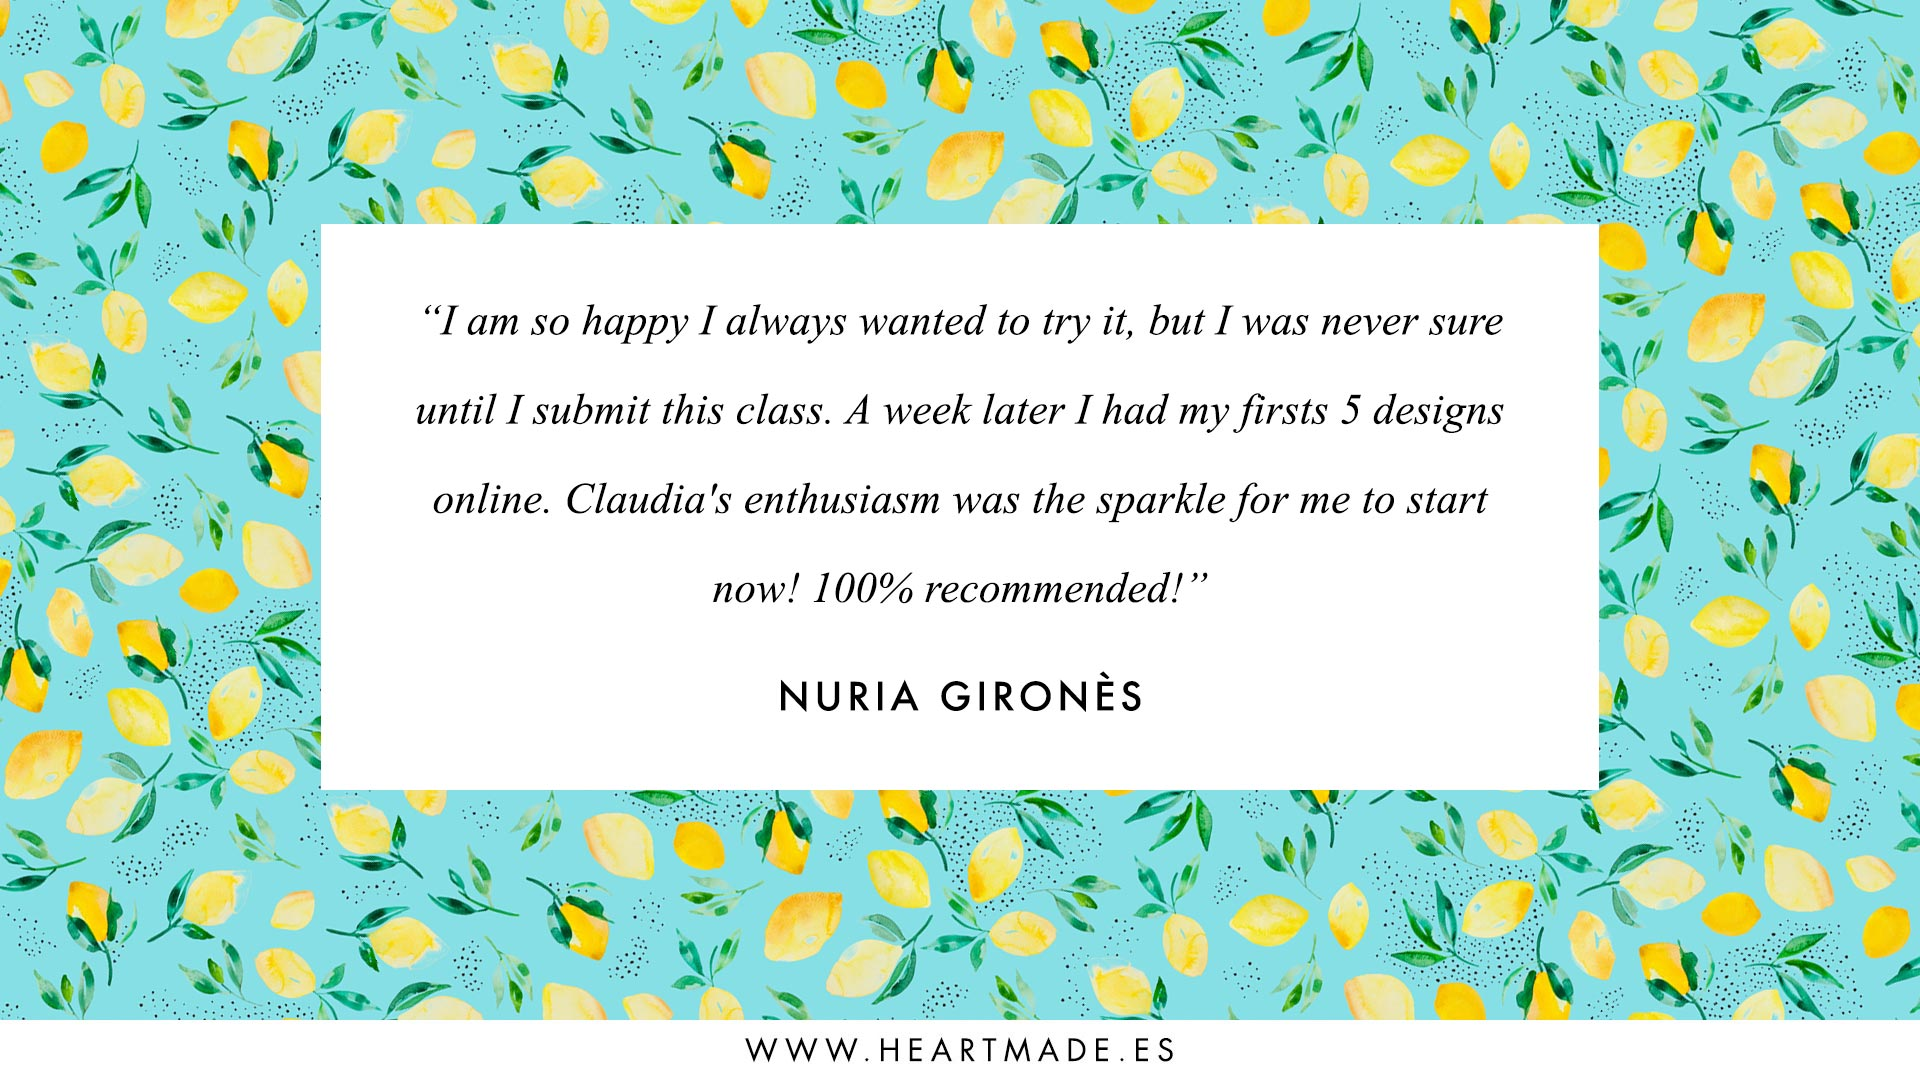 I am so happy, I always wanted to try it but I was never sure until I joined this class. A week later I had my first 5 designs online. Claudia's enthusiasm was the sparkle for me to start! 100% recommended!